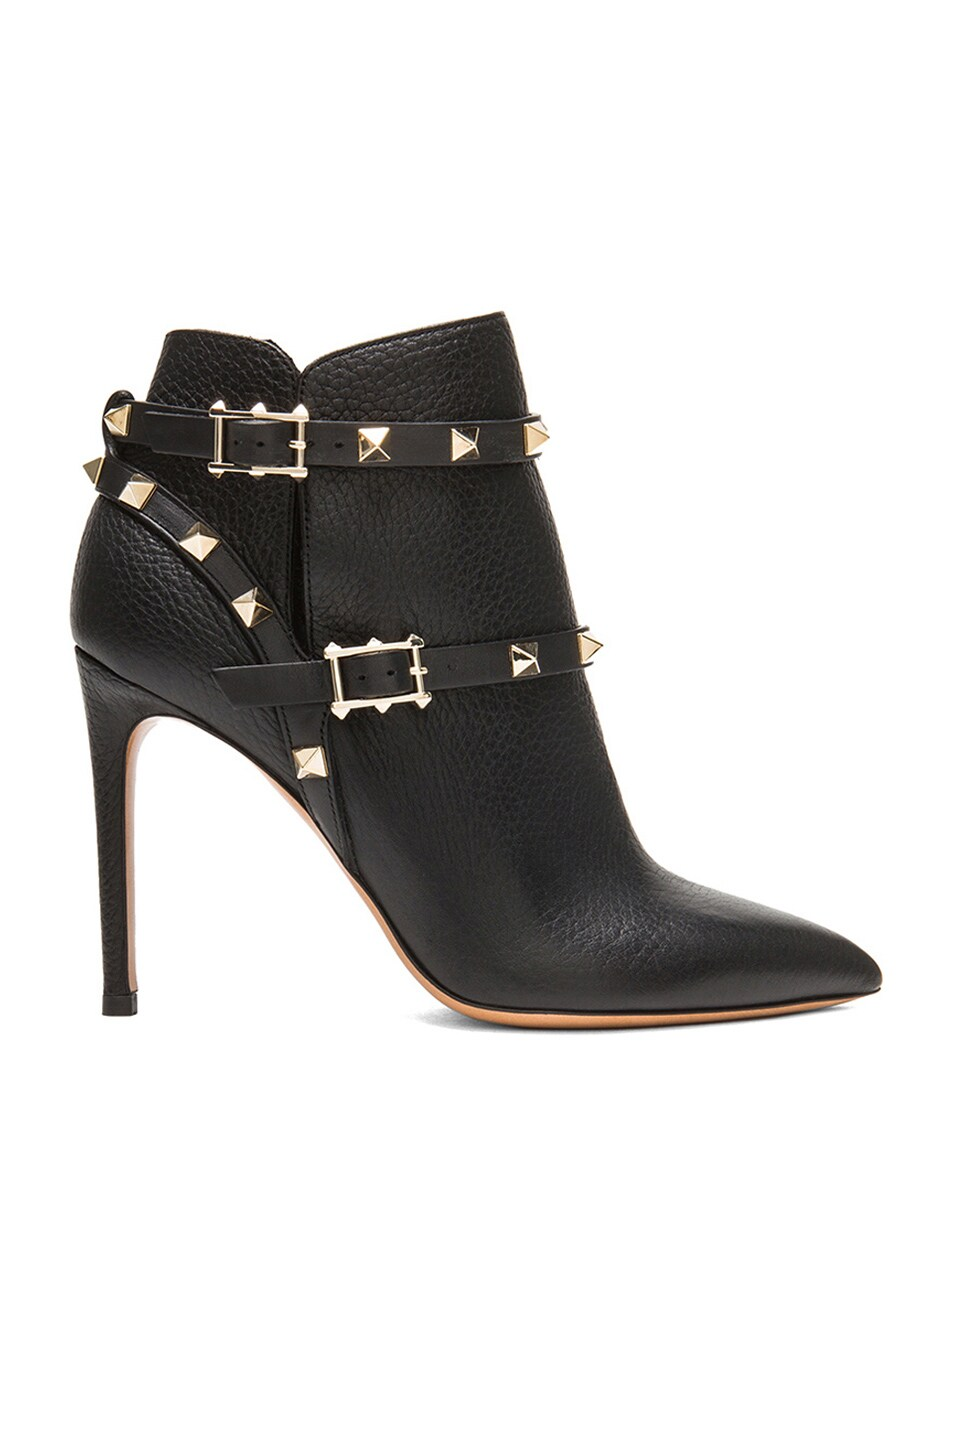 Image 1 of Valentino Rockstud Leather Booties T.100 in Black